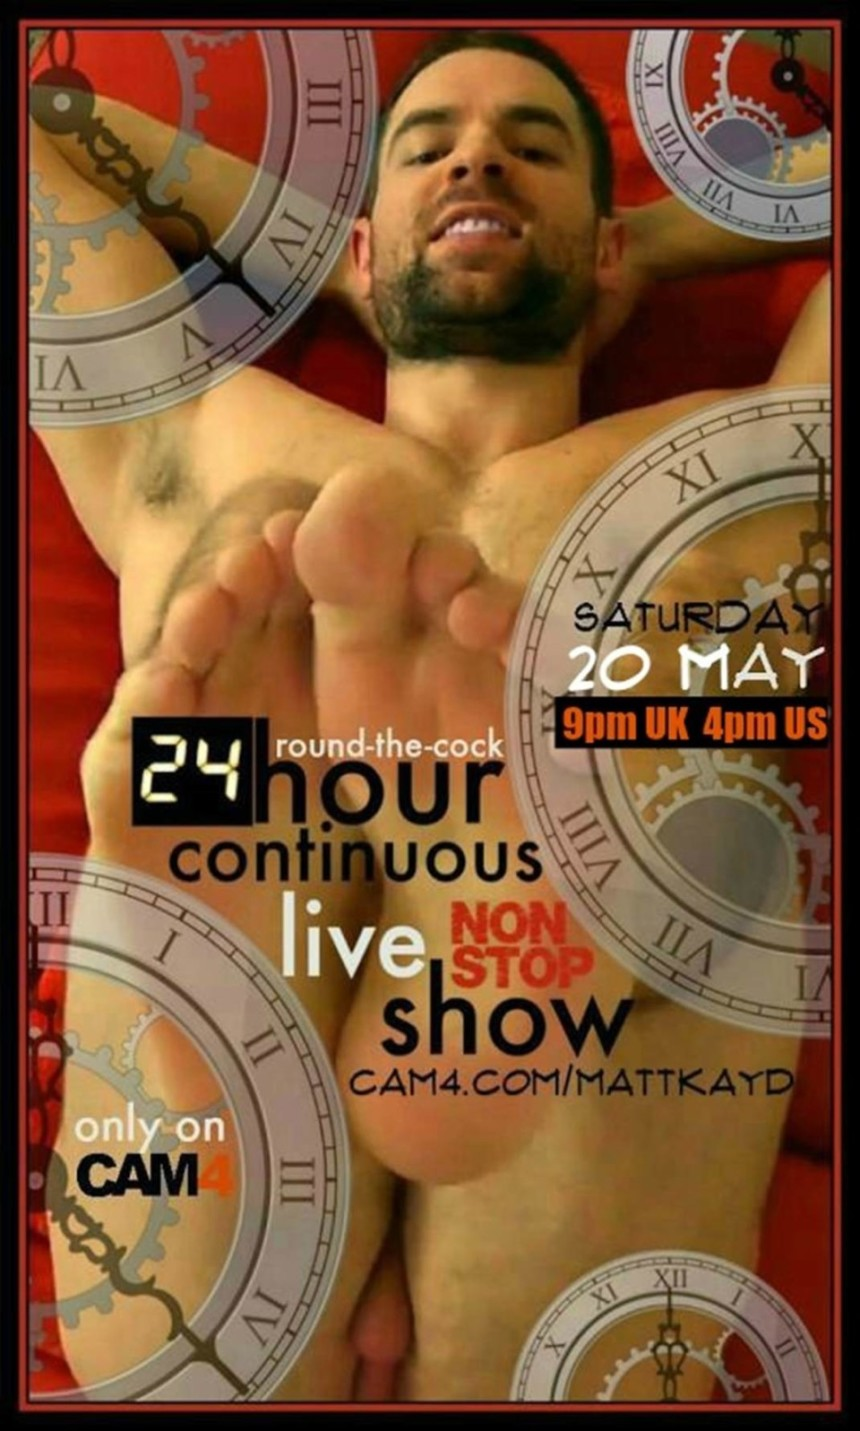 A MUST WATCH: Mattkayd's 24 Hours Non-Stop Continuous Show